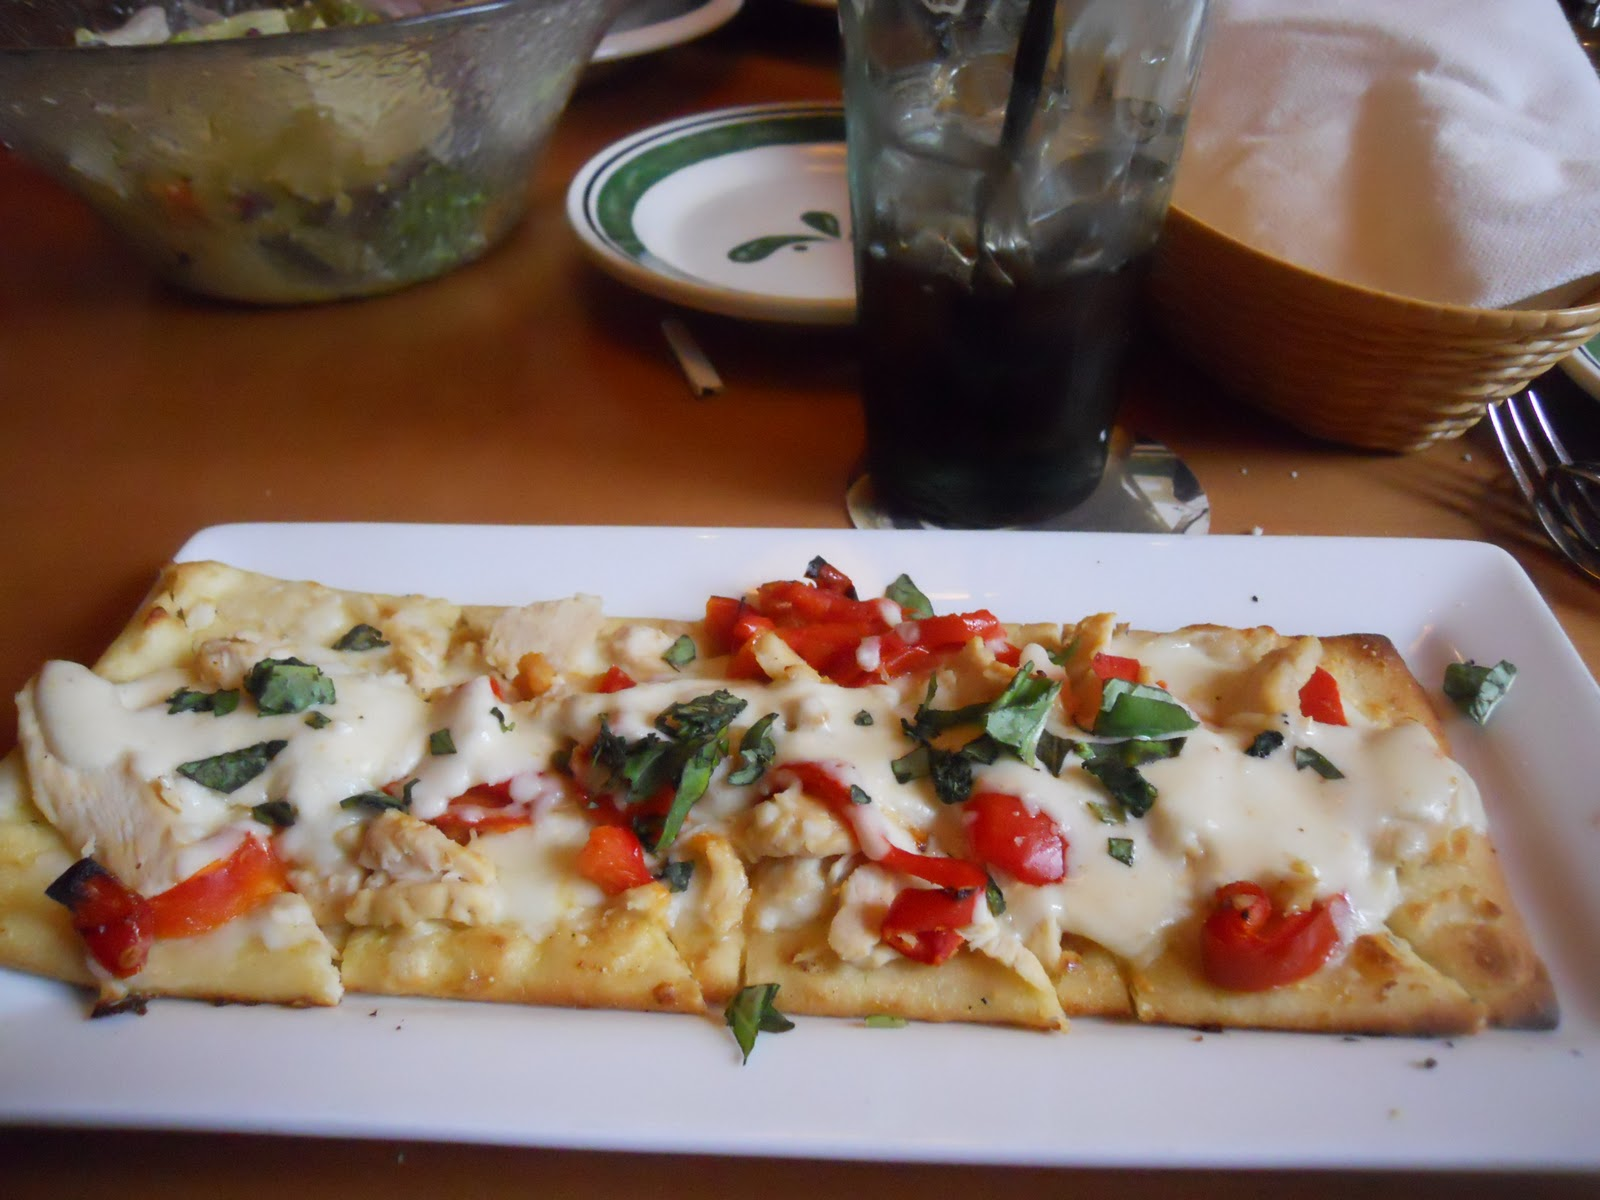 Tasty trek olive garden for Olive garden chicken flatbread